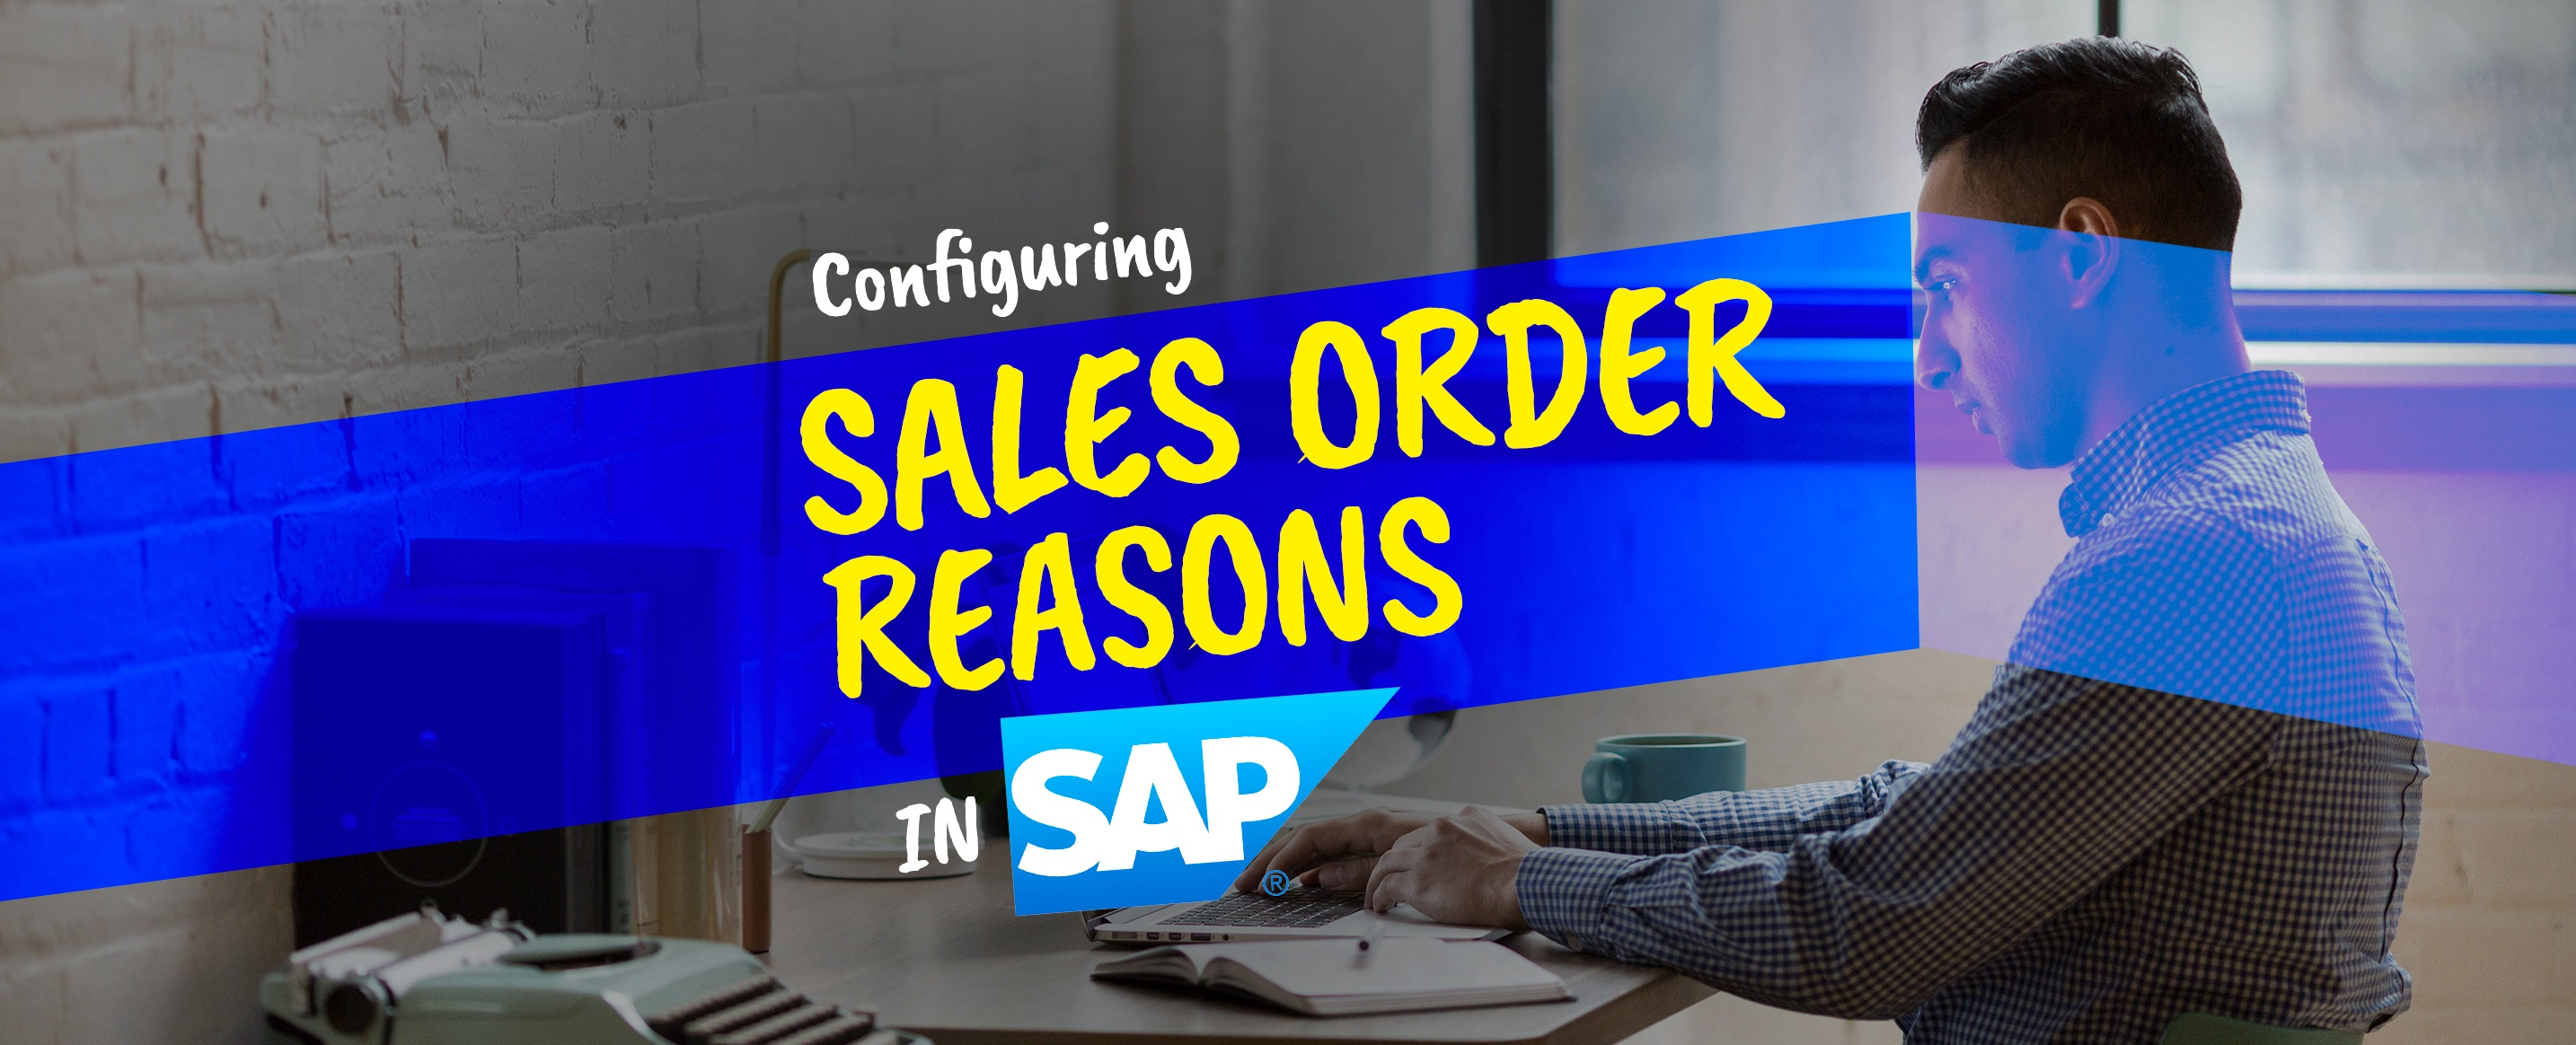 Configuring-Sales-Order-Reasons-within-SAP